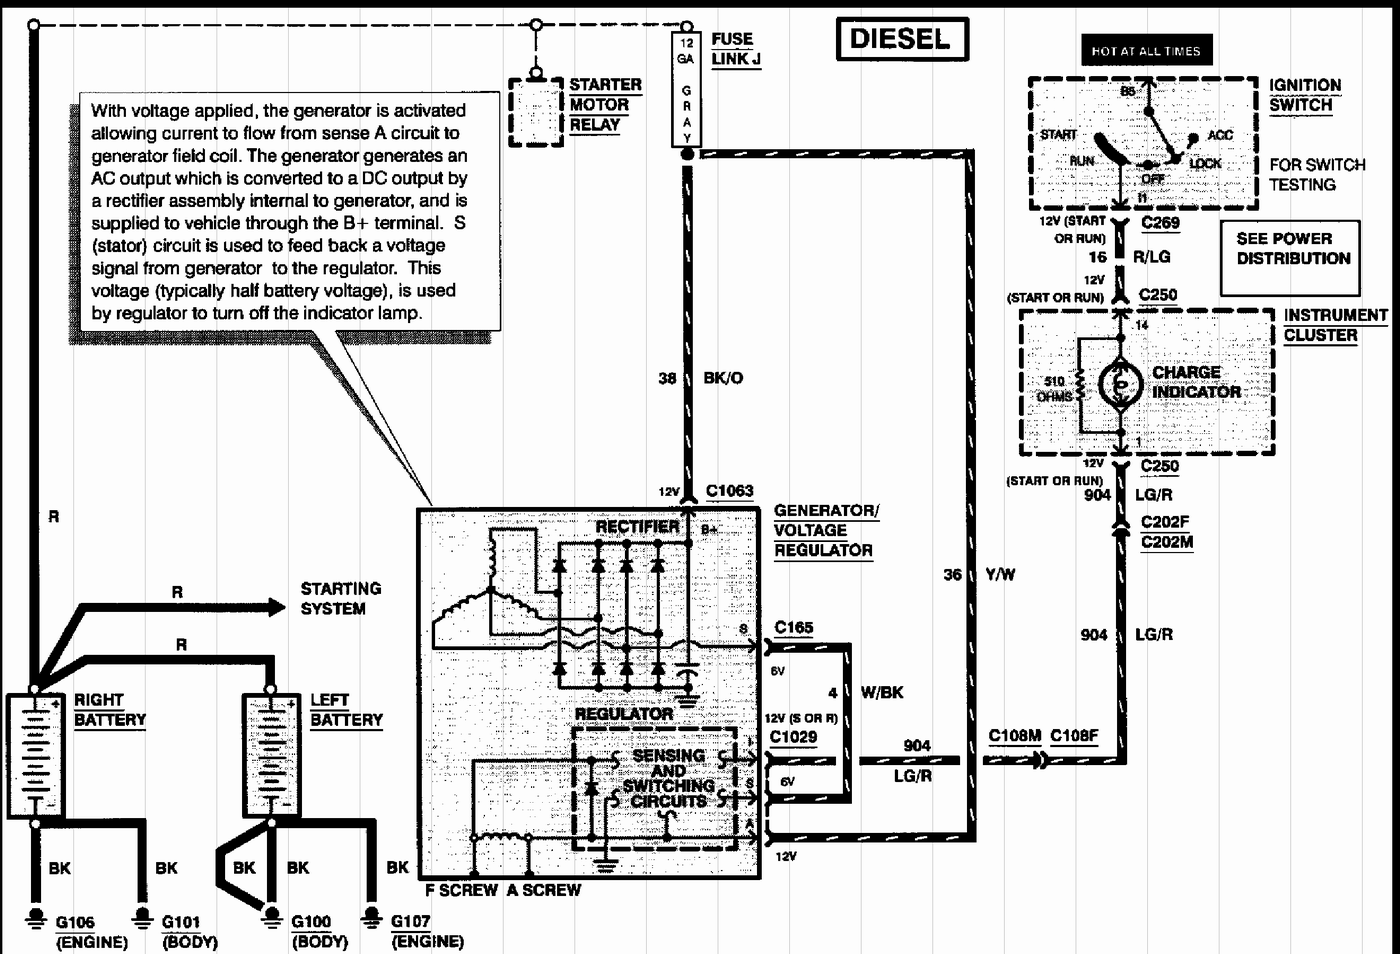 medium resolution of 1995 7 3 powerstroke wiring schematic simple wiring diagram rh 4 mara cujas de 7 3 powerstroke